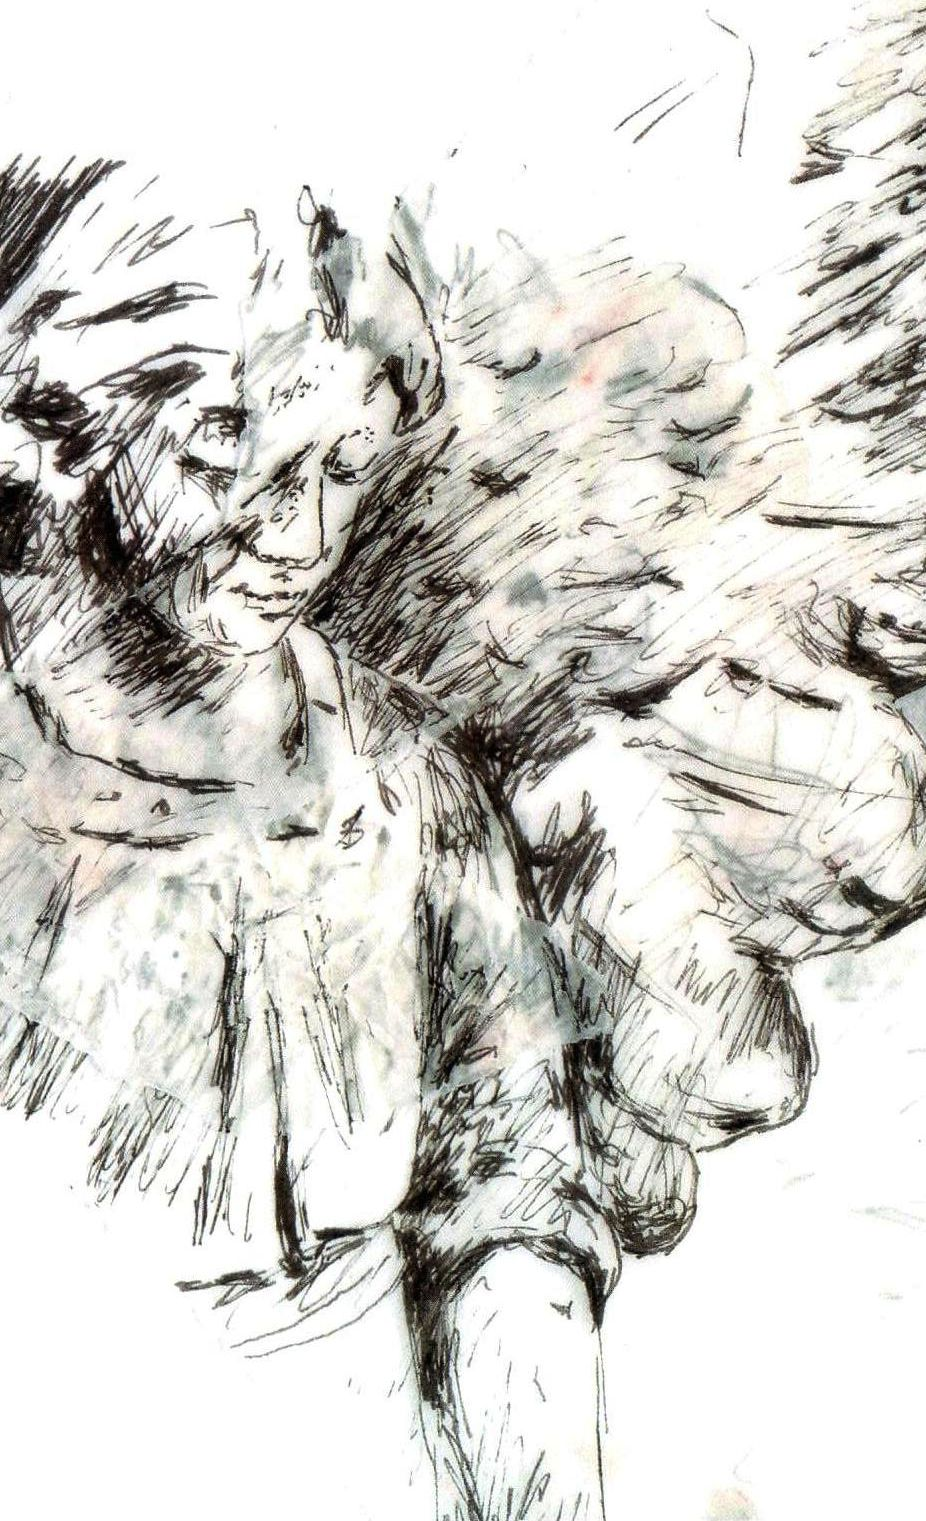 Detail of an angel in a cemetery - drawn with pen on layers of tracing paper